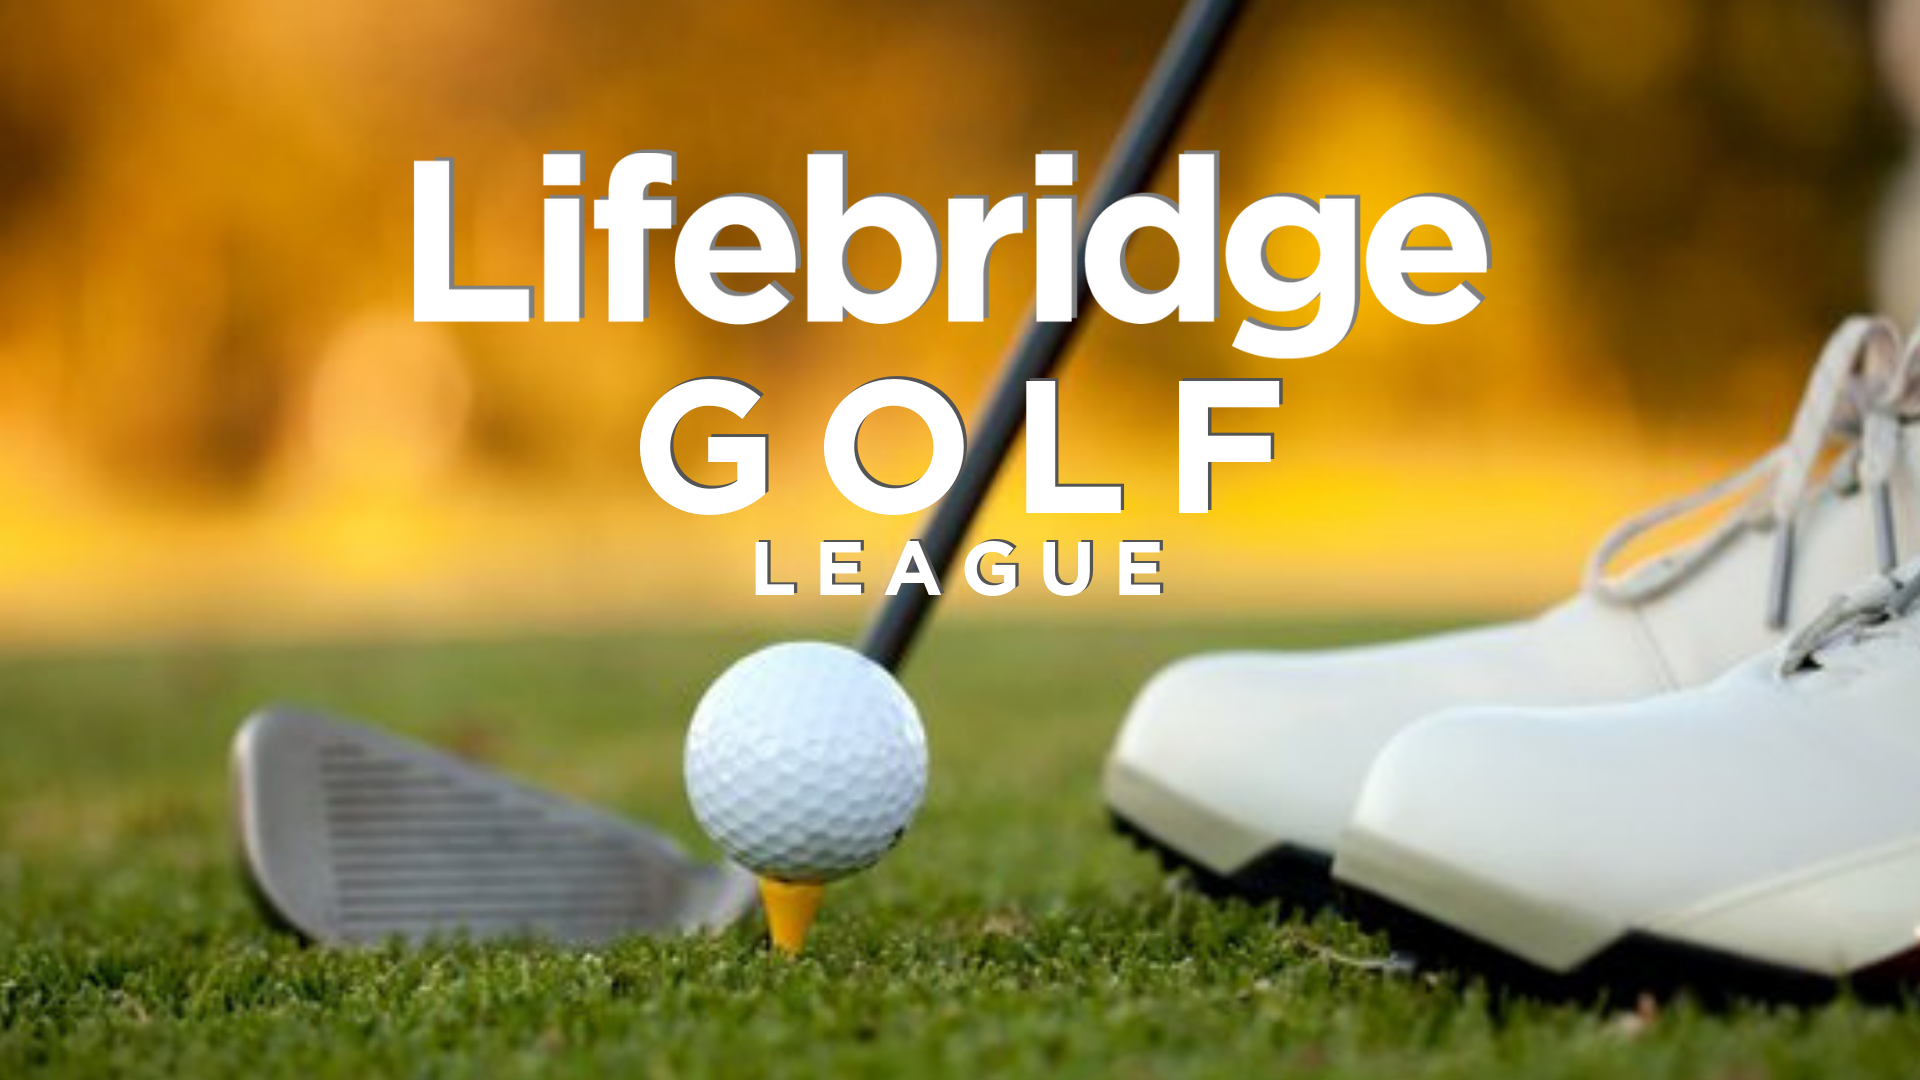 Come Tee off with Lifebridge's Golf League. Hosted once a month at Orange County National this Co-ed group gets together for fellowship fresh-air and fun. For more information and sign up contact Bobby Pinson at (407) 301 - 2512 or by email at bobby@purewaterchanges.com